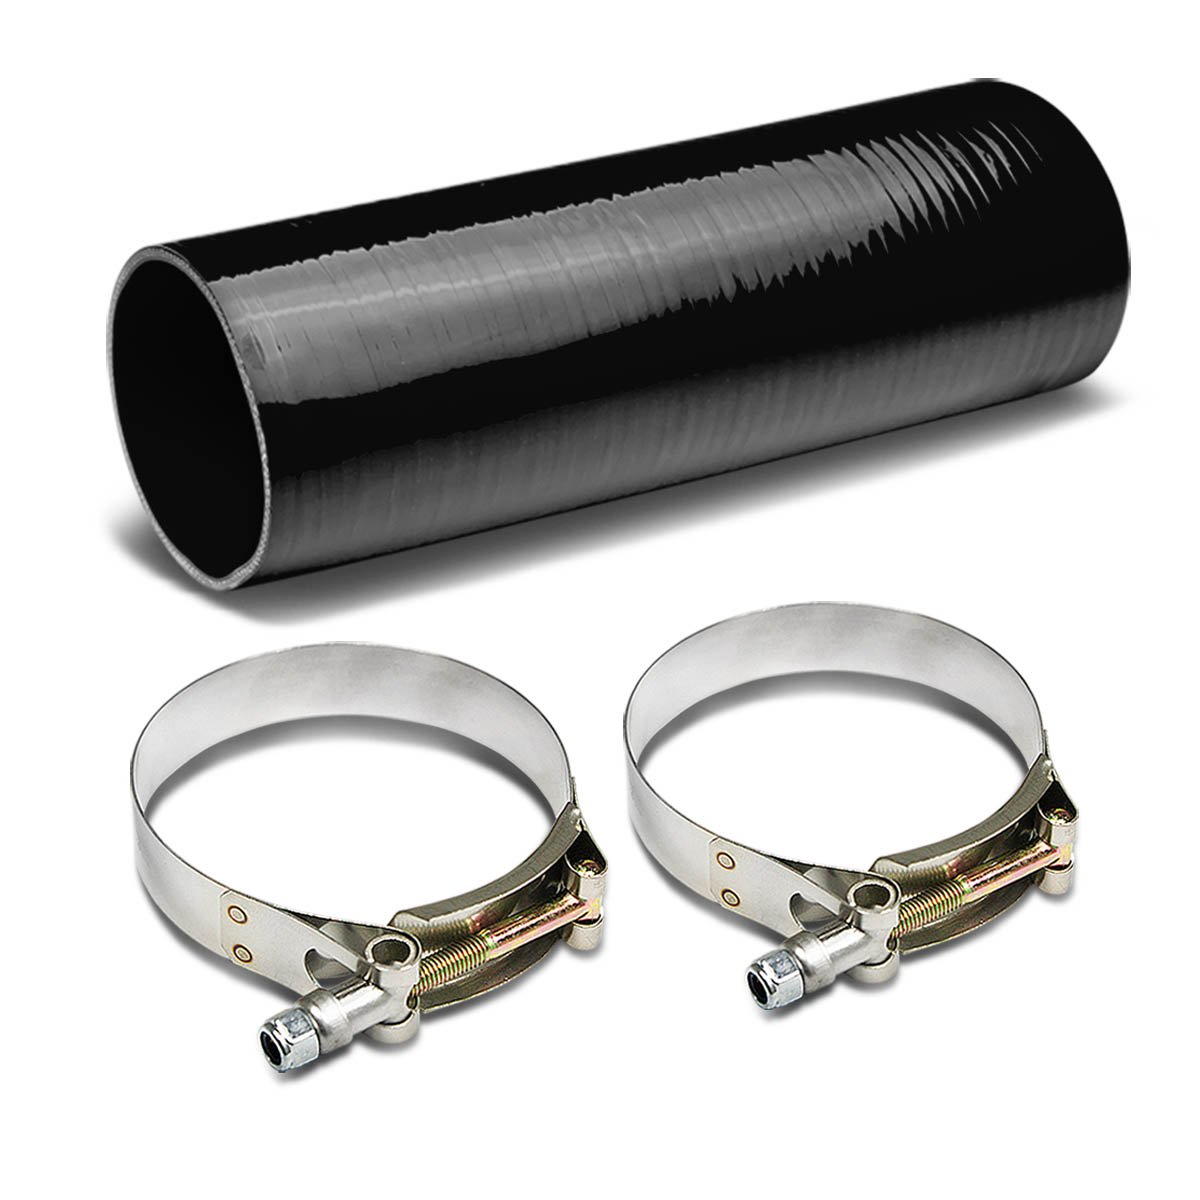 Black 2.75 to 2.75 inches 12 inches Long Straight 4-Ply Turbo//Intake//Intercooler Piping Silicone Coupler Hose+T-Clamp